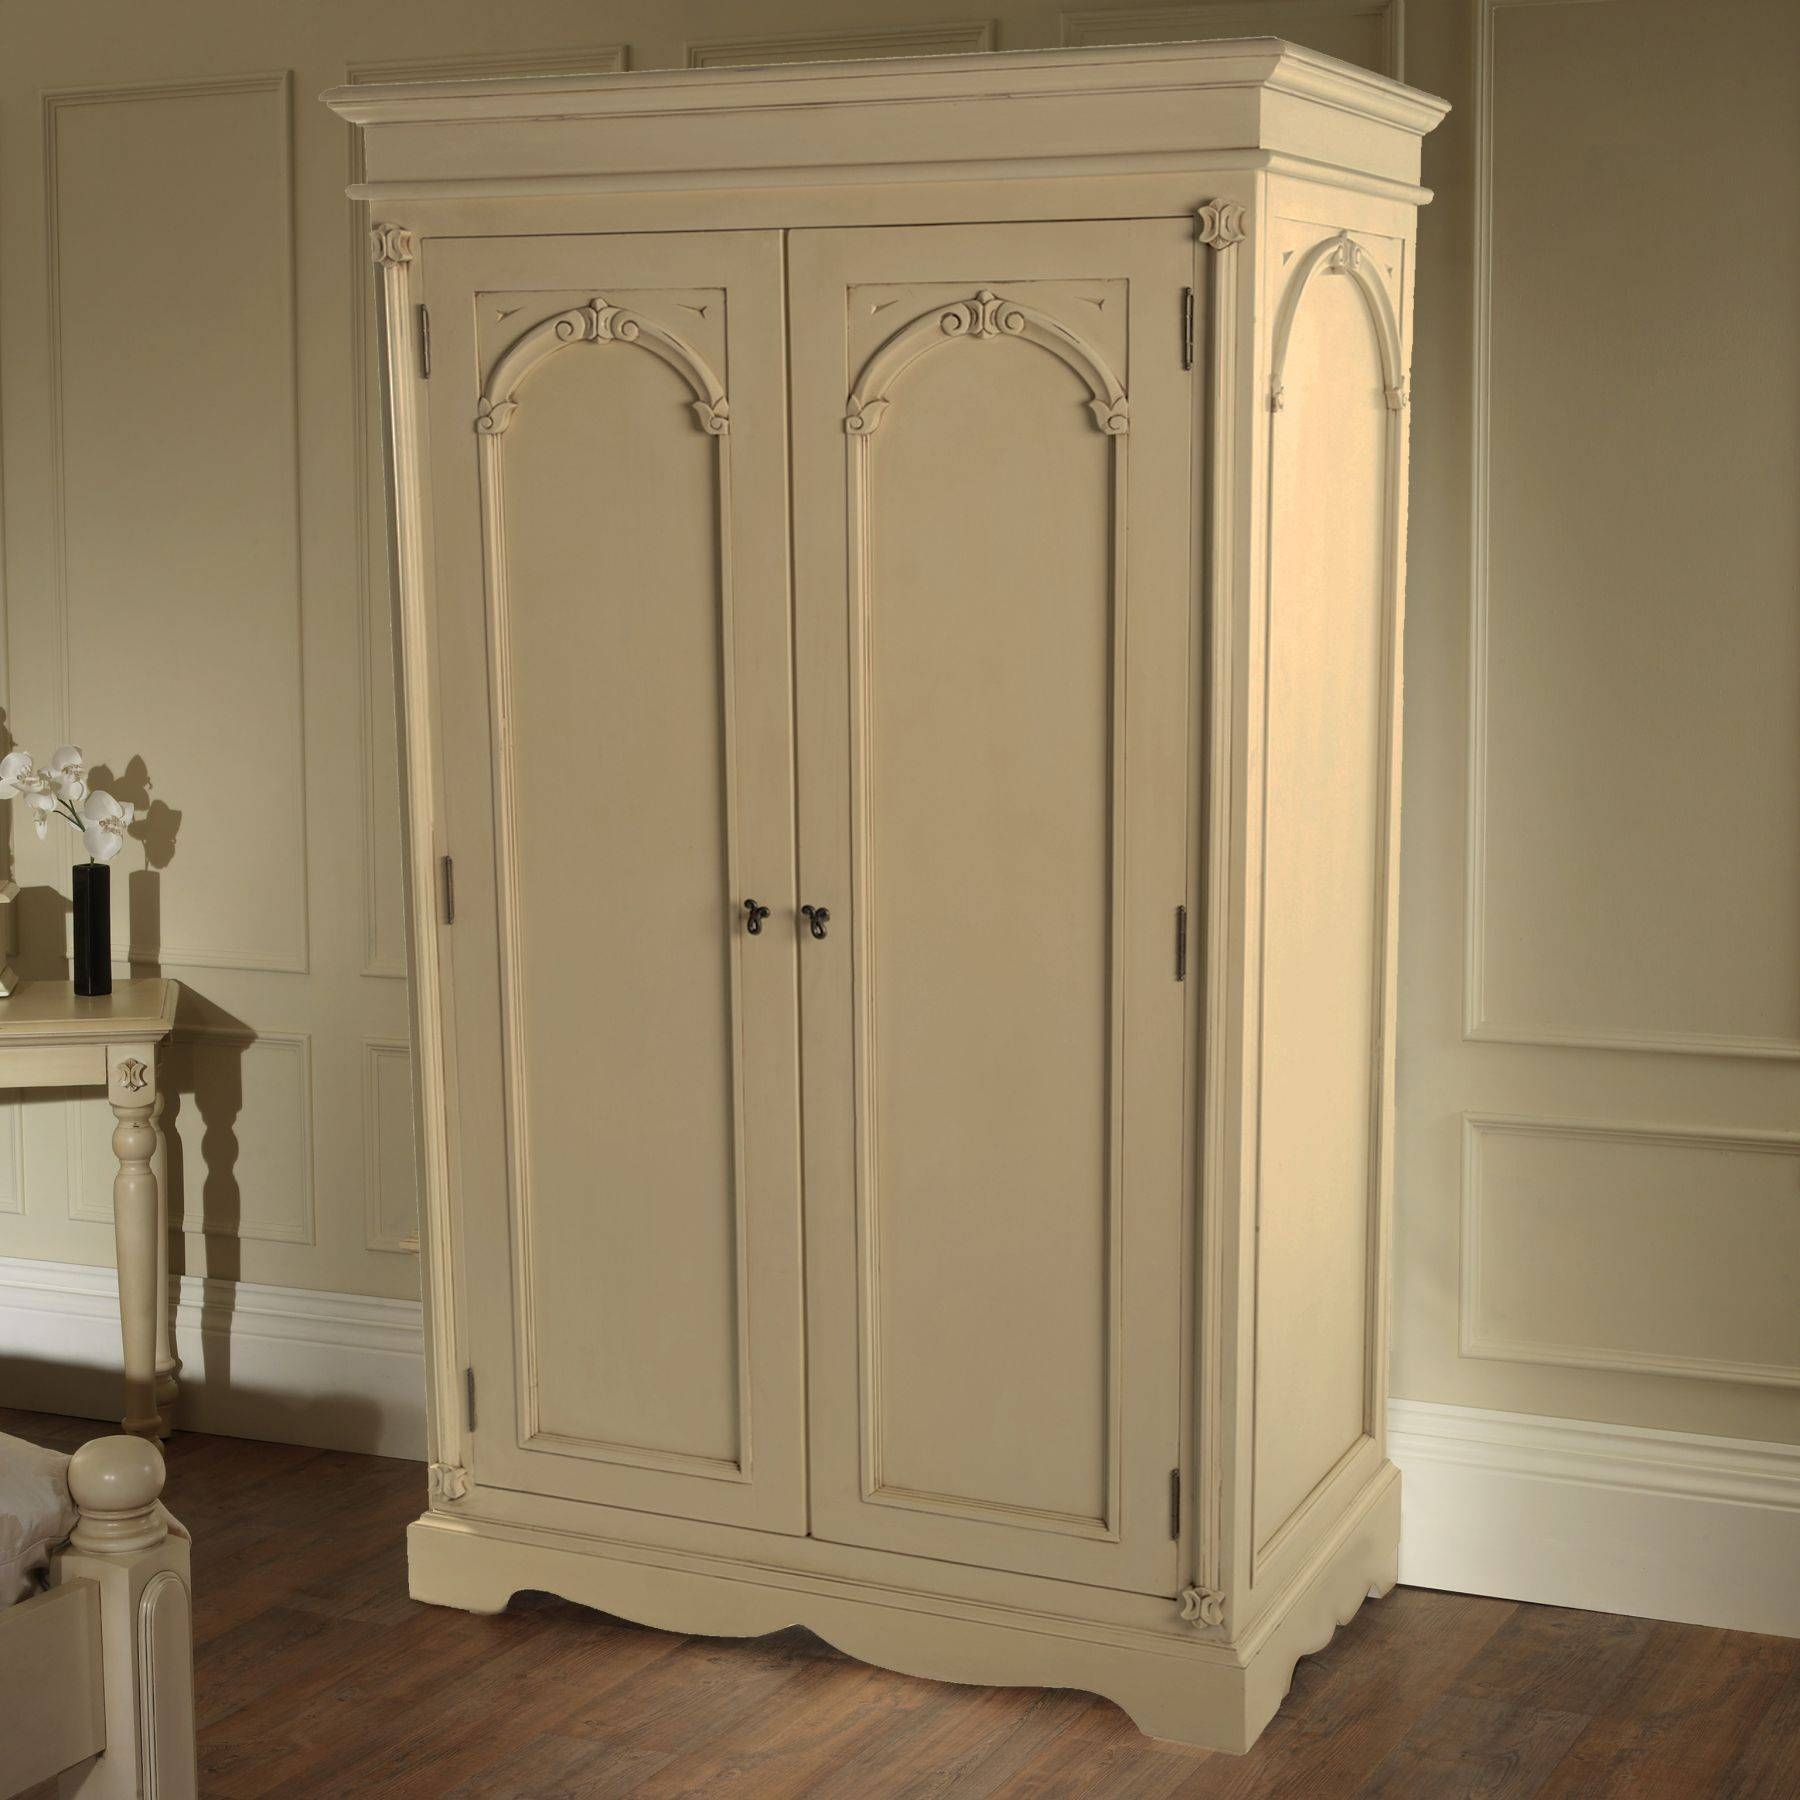 Victorian Antique French Wardrobe Working Well Alongside Our Within French Shabby Chic Wardrobes (View 8 of 15)